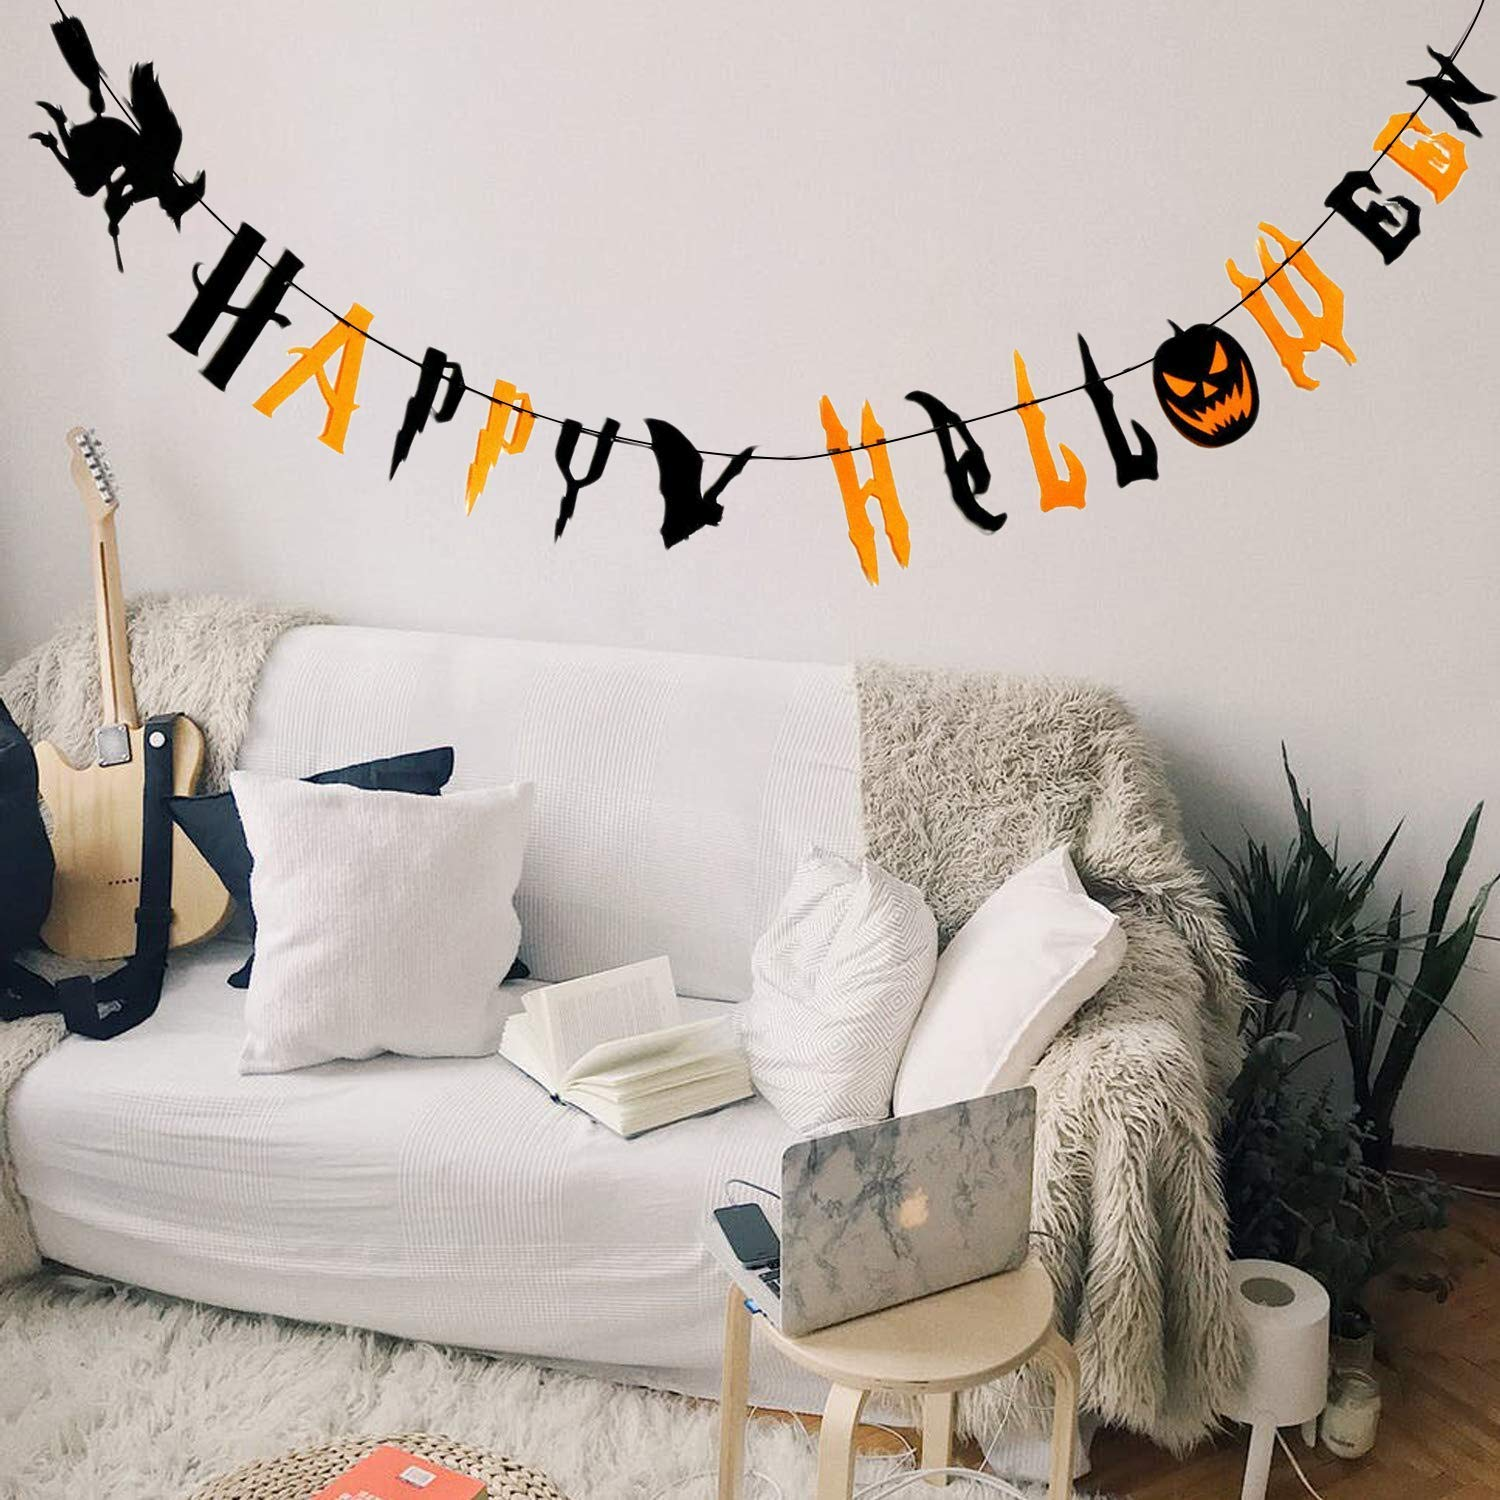 Happy Halloween Banner Bunting with Scary Pumpkin Flying Witch Spooky Bat Party Theme for Halloween Wall Decorations Party Supplies Home Hanging Photo Props